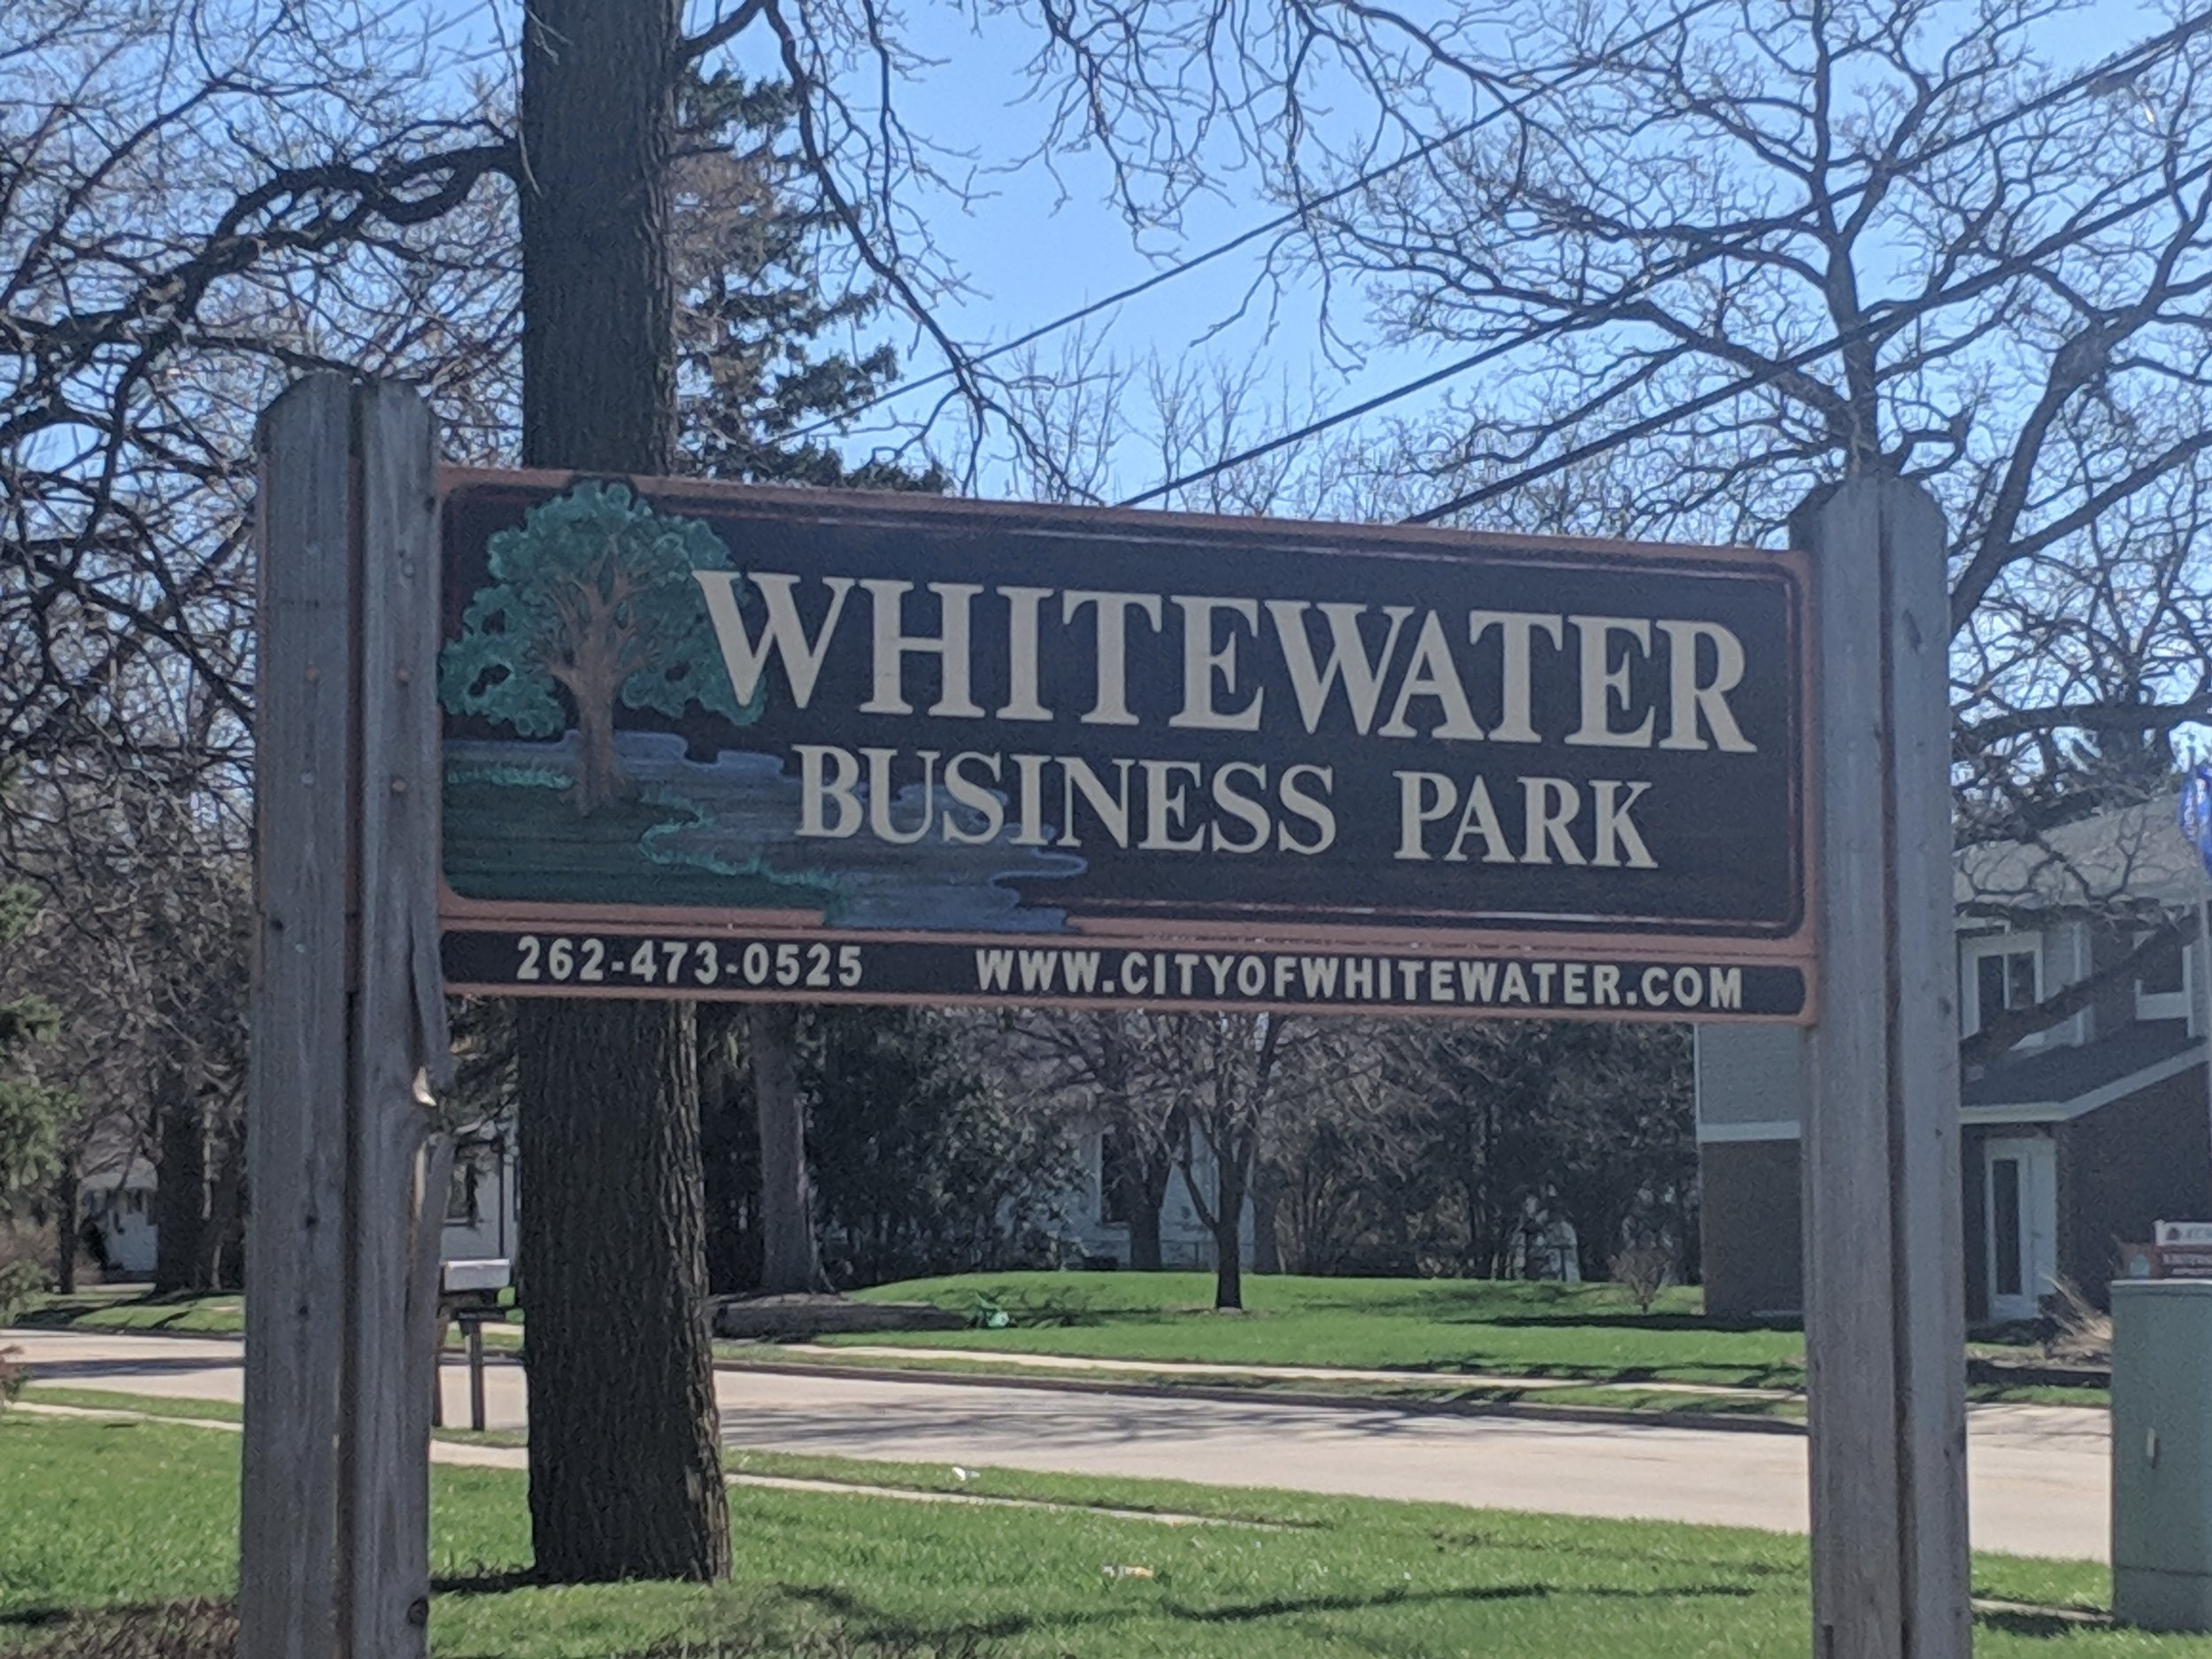 Work - With a combination of geographic advantages, economic resources, university relationships, and quality of life, Whitewater is the